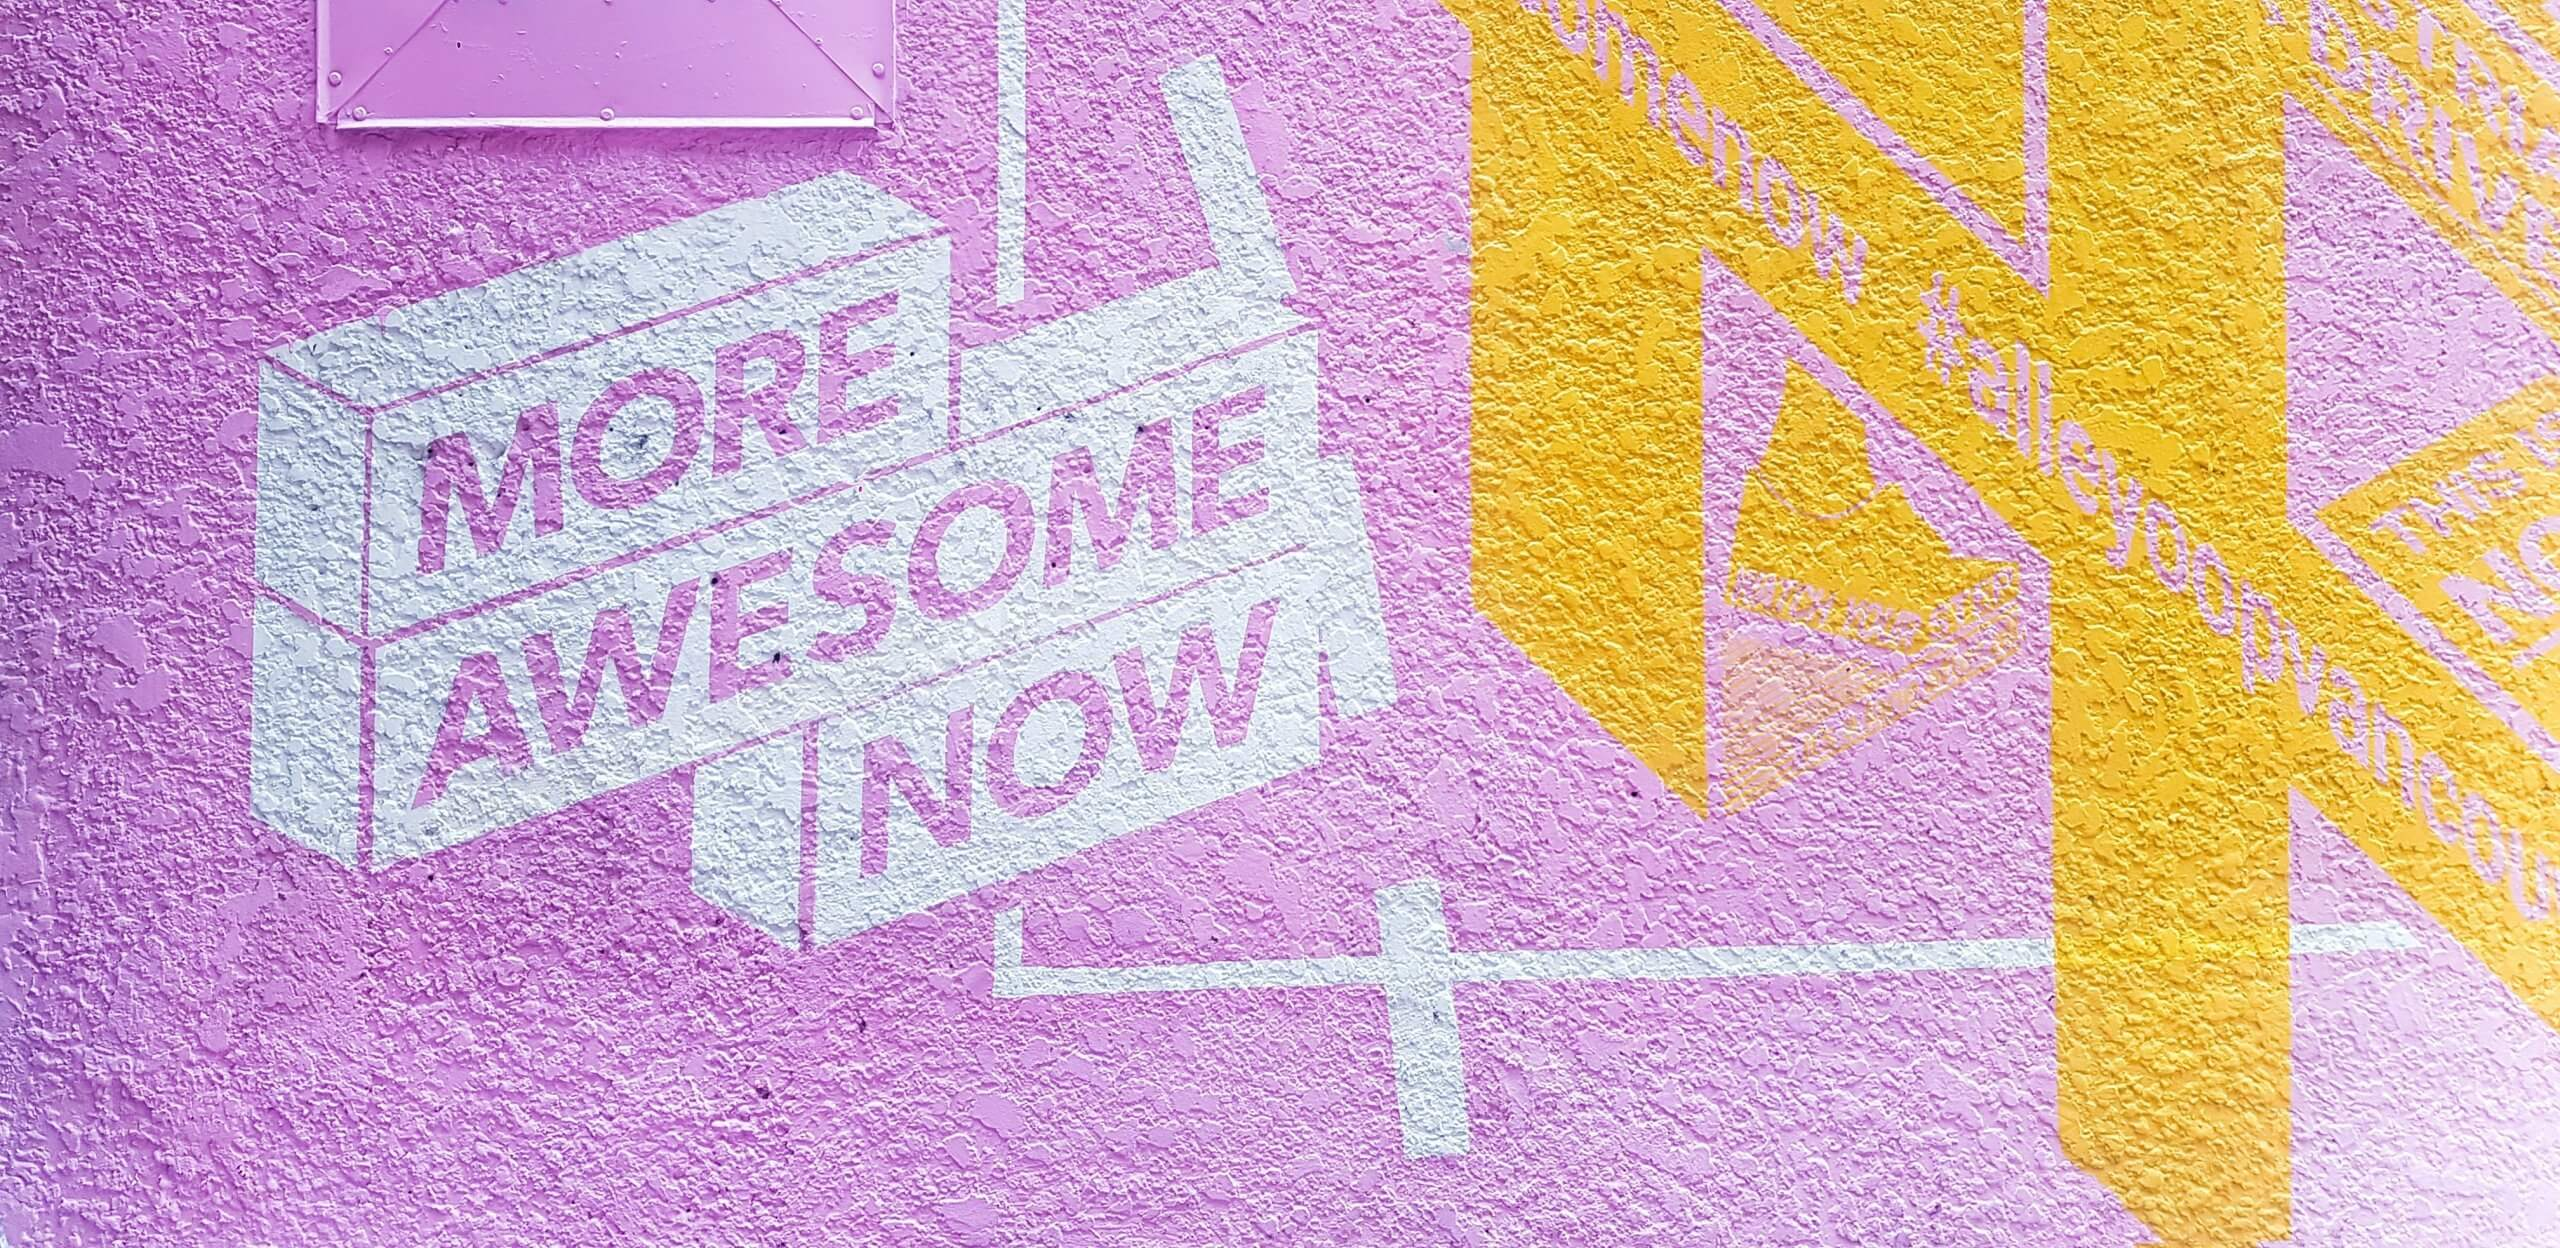 More Awesome Now Wall Art